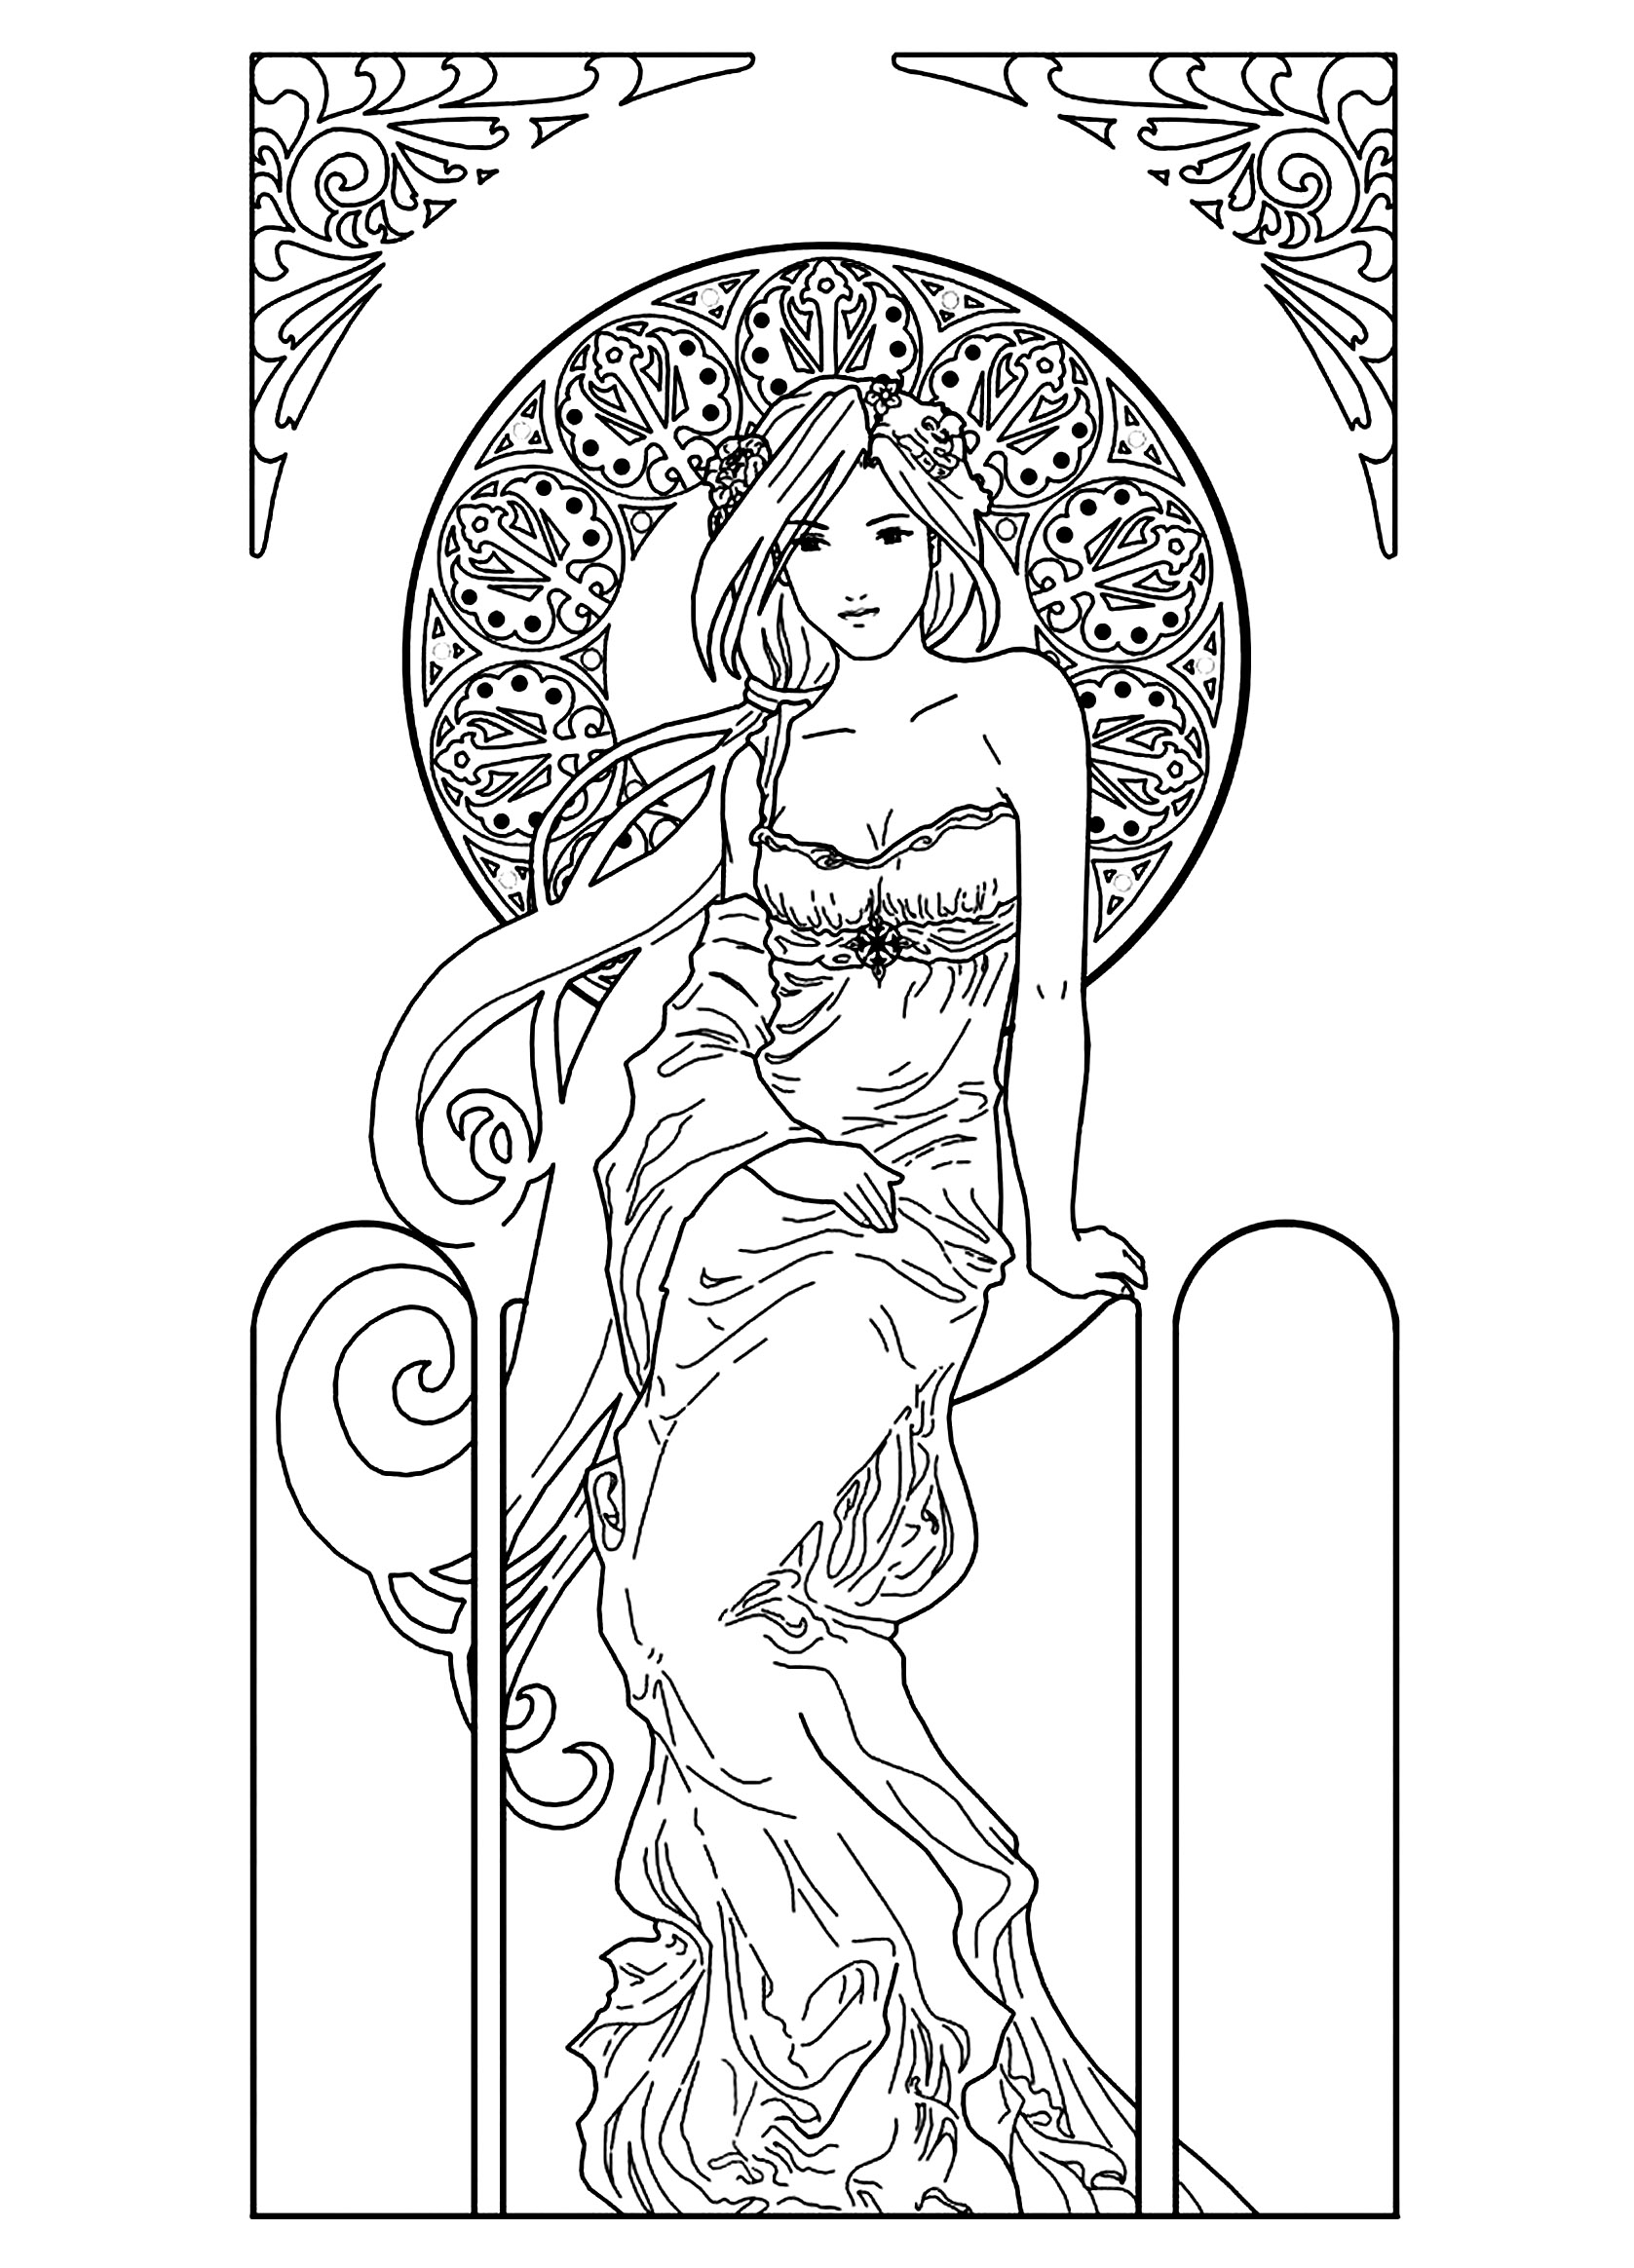 Coloring pages woman - Coloring Drawing Woman Inspiration Art Nouveau Free To Print